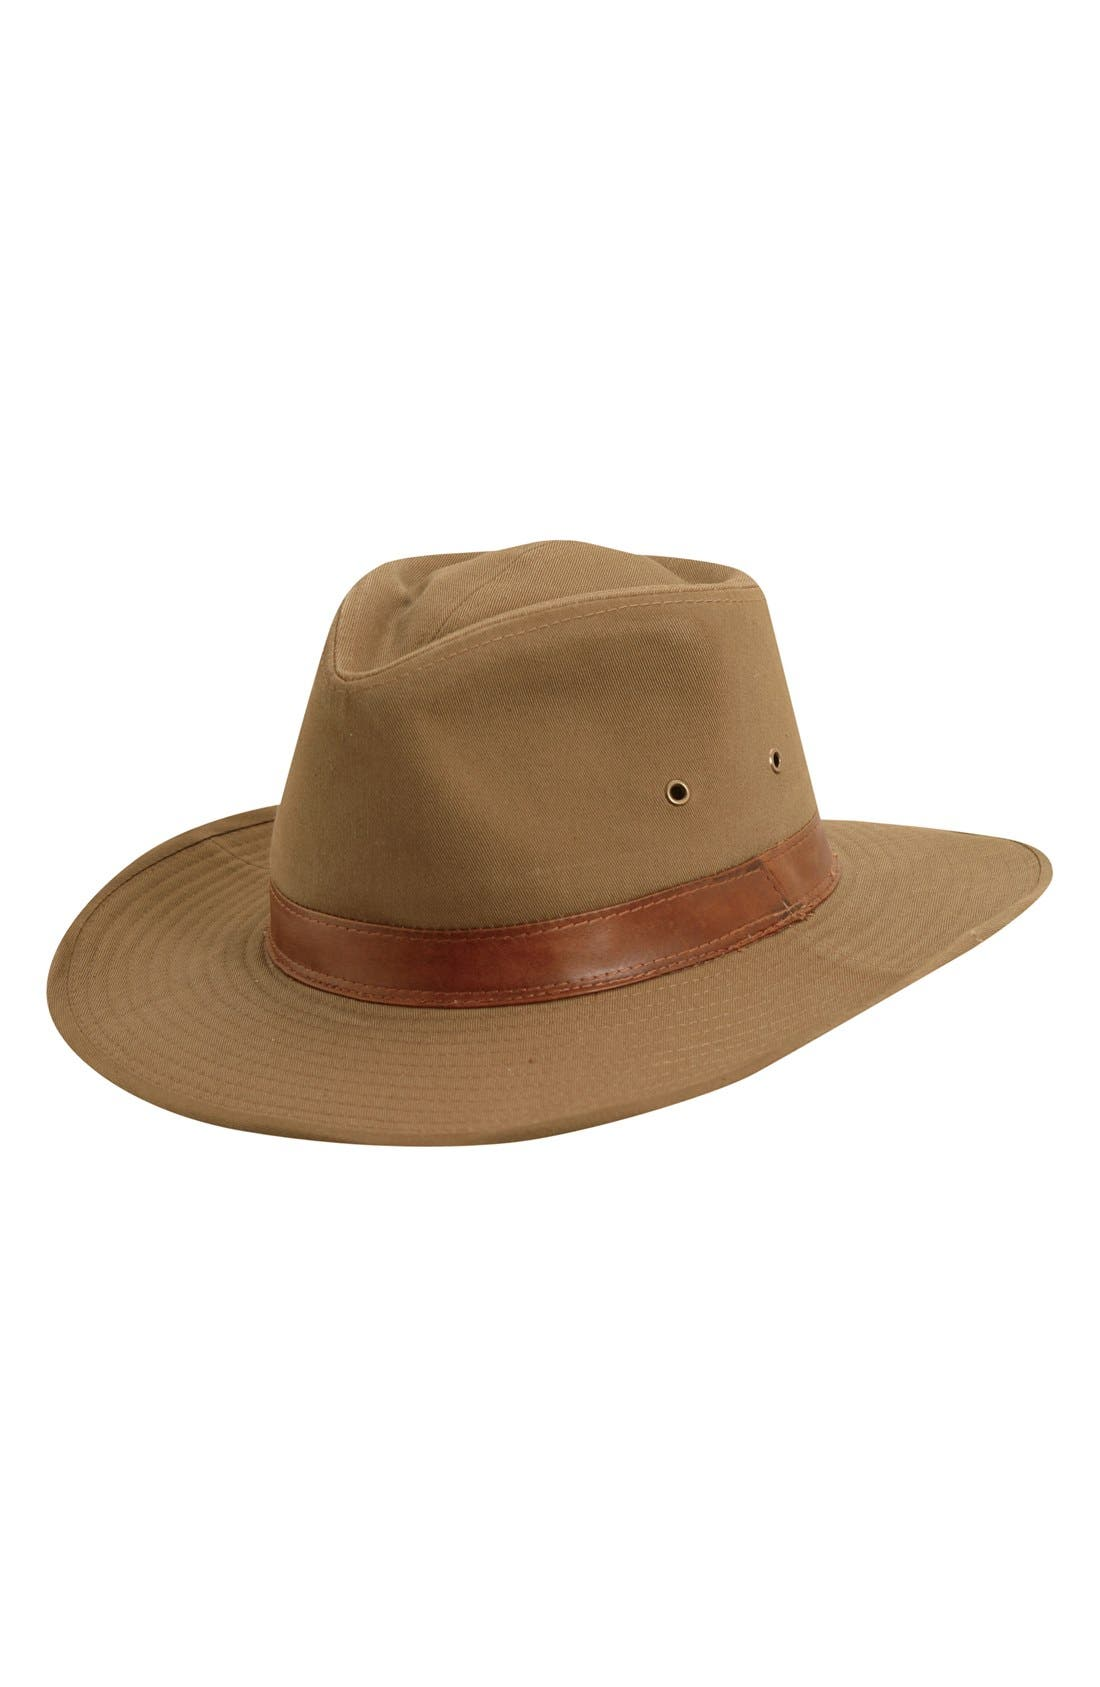 Cotton Outback Hat,                         Main,                         color, Bark